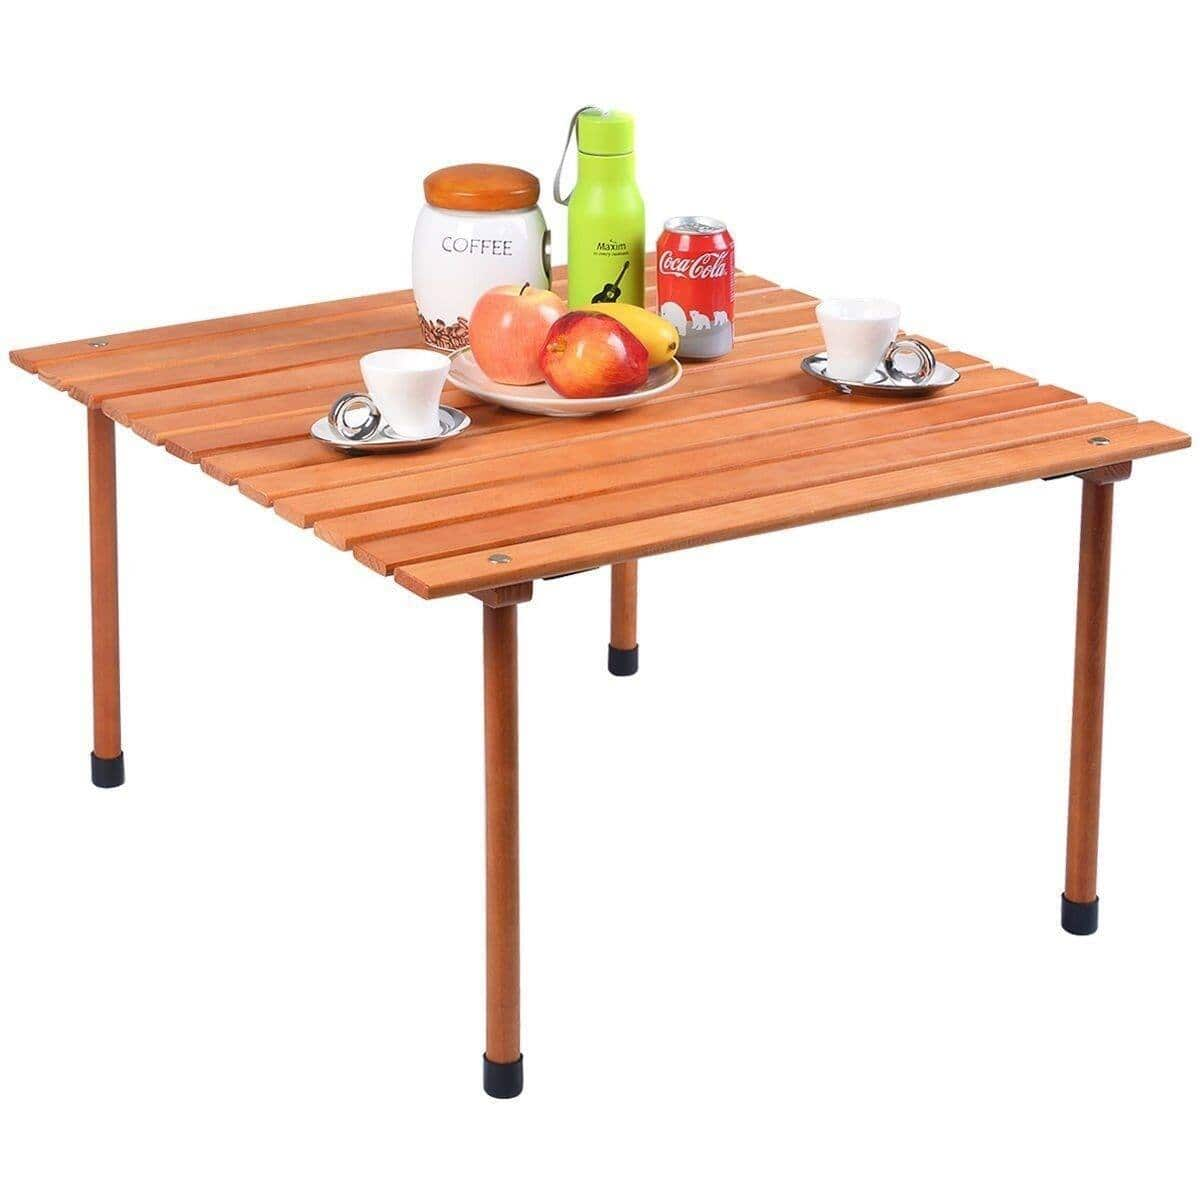 Costway Folding Wooden Camping Roll Up Table with Carrying Bag for Picnics and Beach - $44.95 + Free Shipping